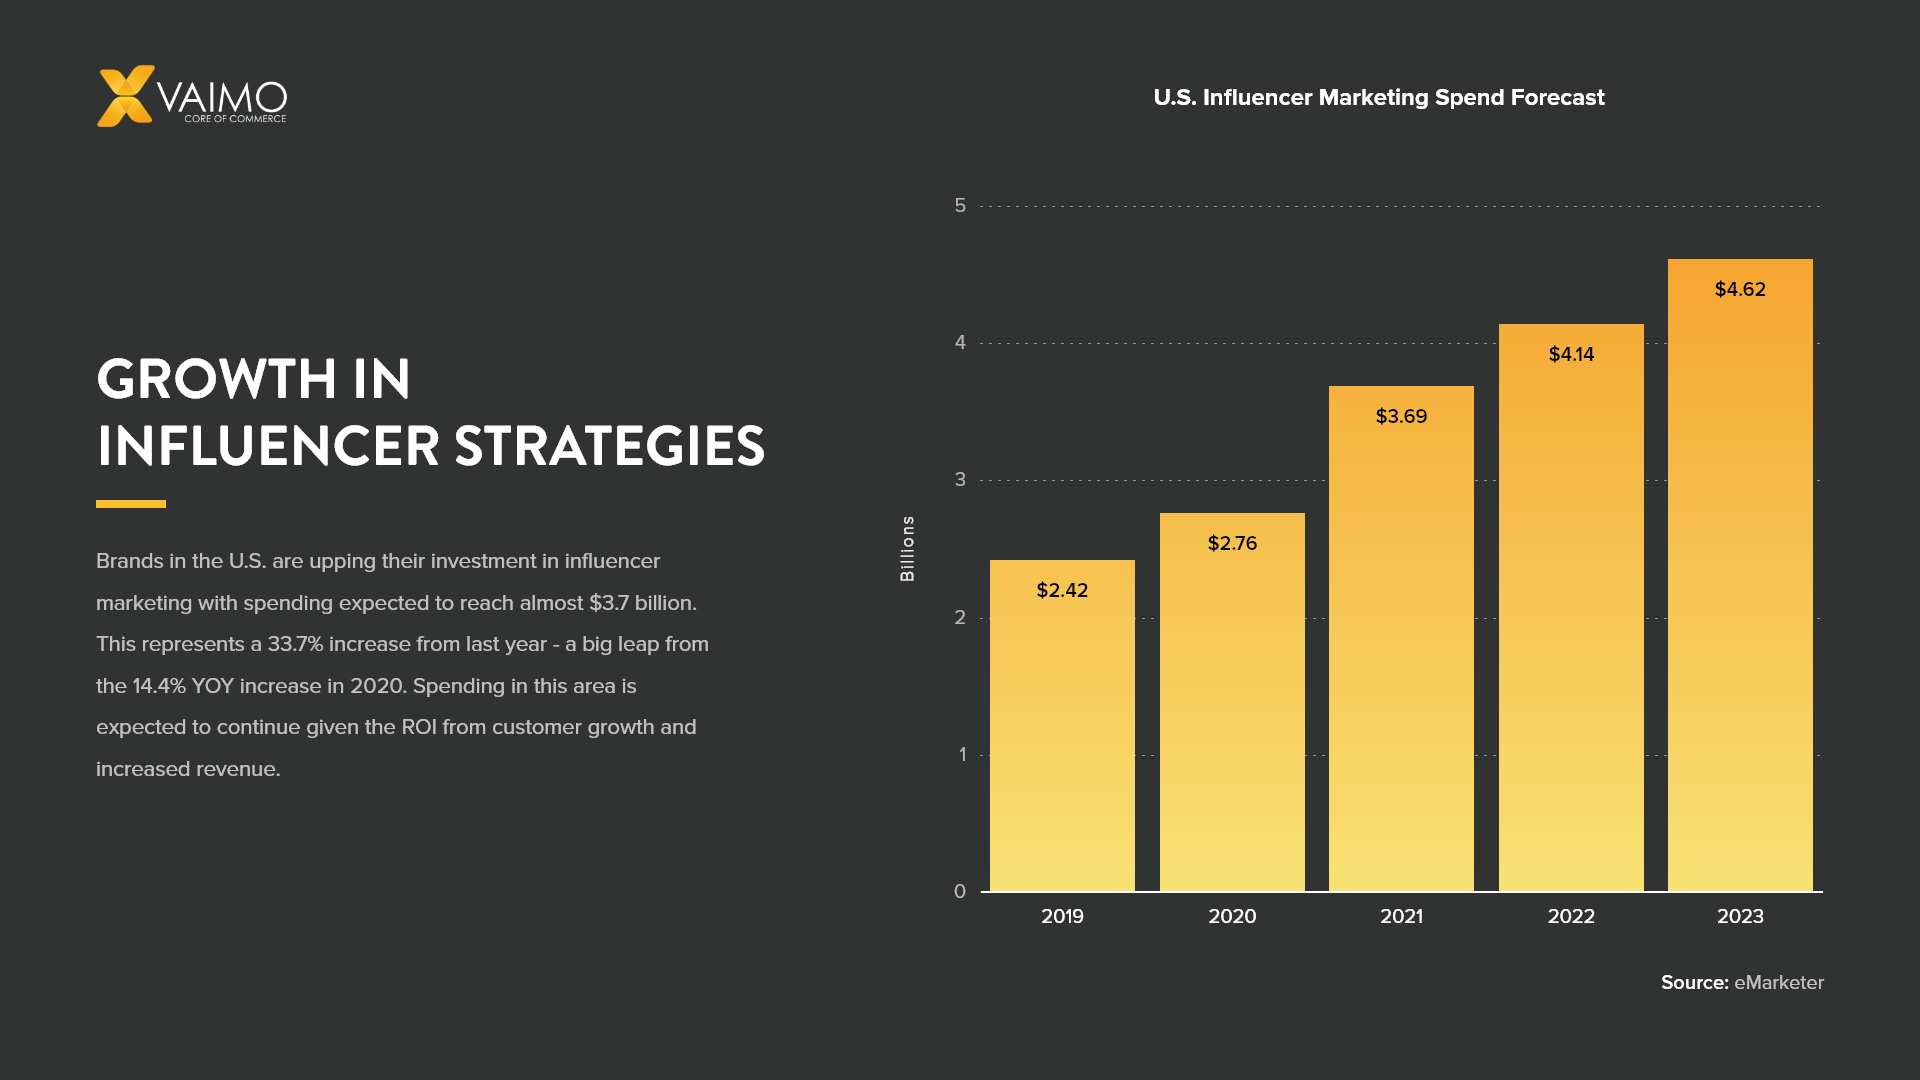 growth in influencer strategies